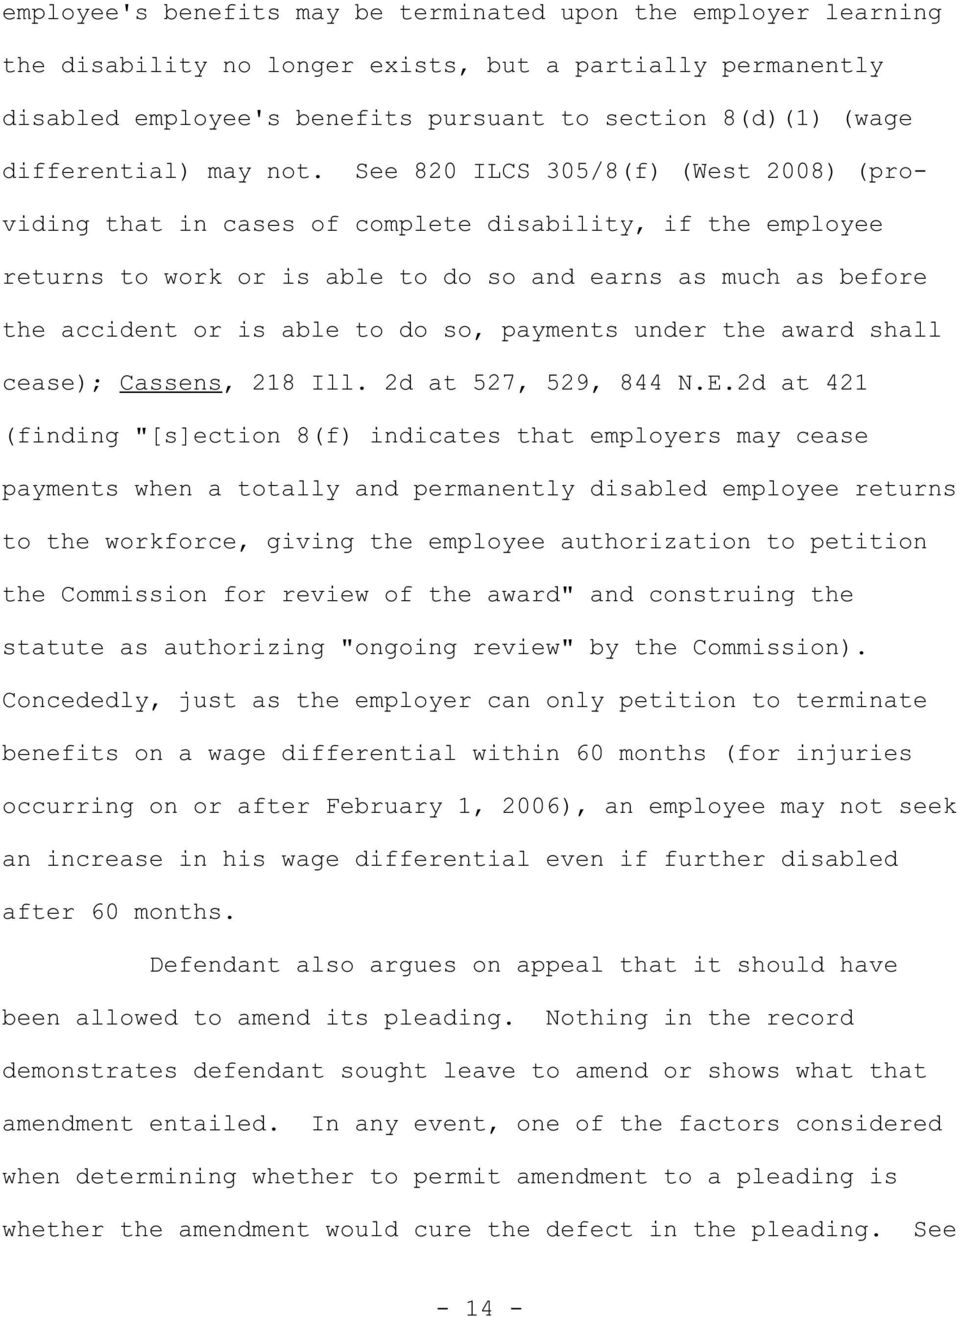 See 820 ILCS 305/8(f) (West 2008) (providing that in cases of complete disability, if the employee returns to work or is able to do so and earns as much as before the accident or is able to do so,